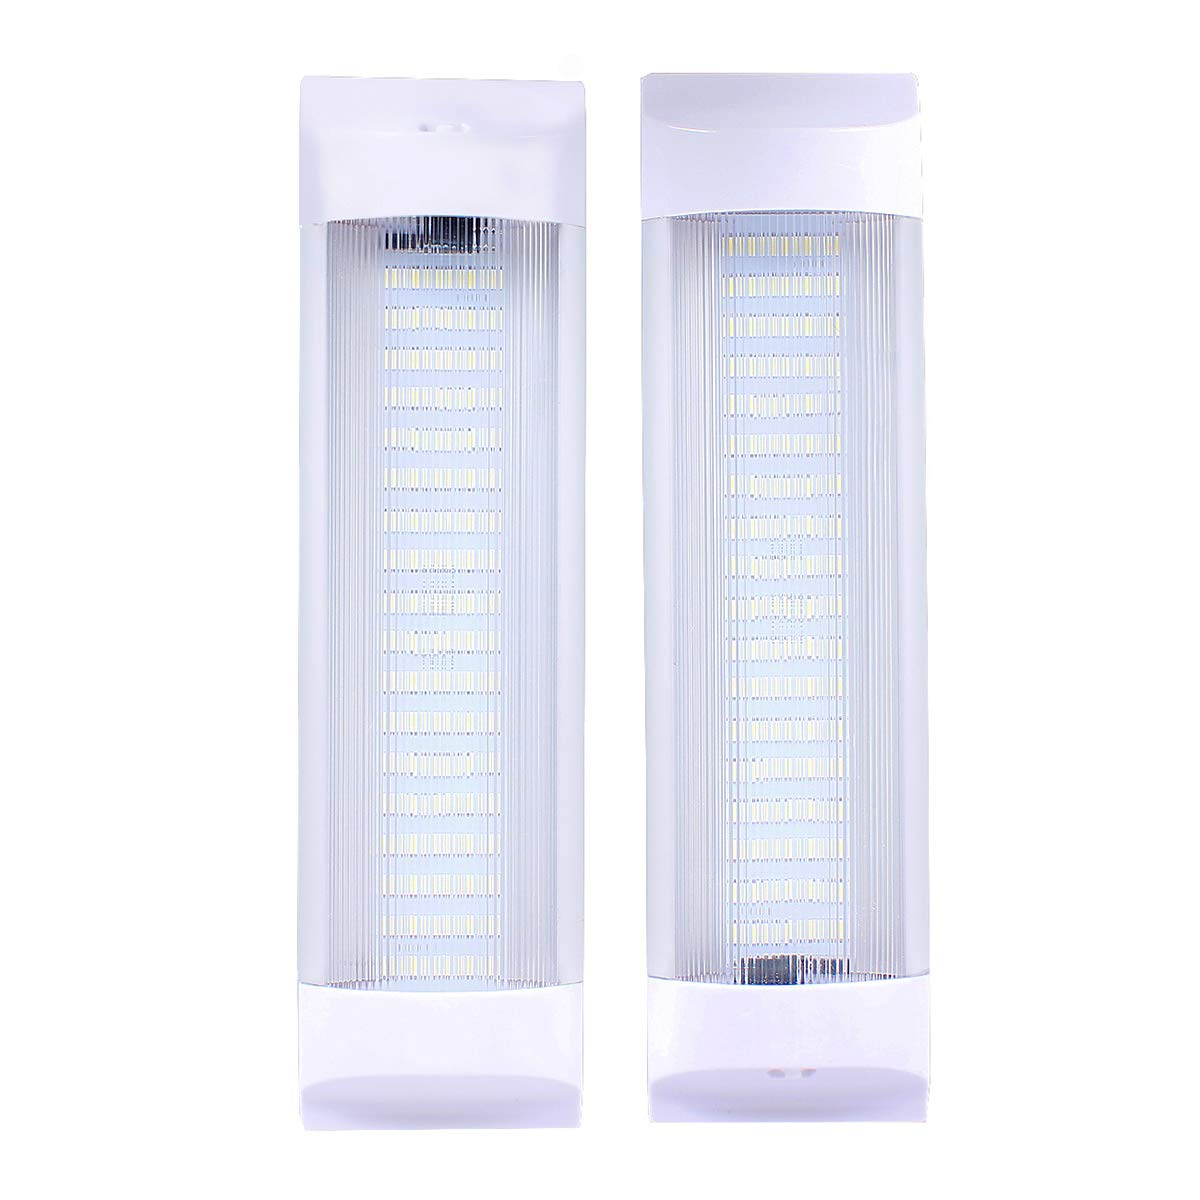 72 LEDs 11' Car Interior Led Light Bar White Light Tube with On/Off Switch for Car Van Truck RV Camper Boat (Work as Map Light/Dome Light/Trunk or Cargo Area Light/Rear Room Light etc)- Pair of 2 VOUKE US